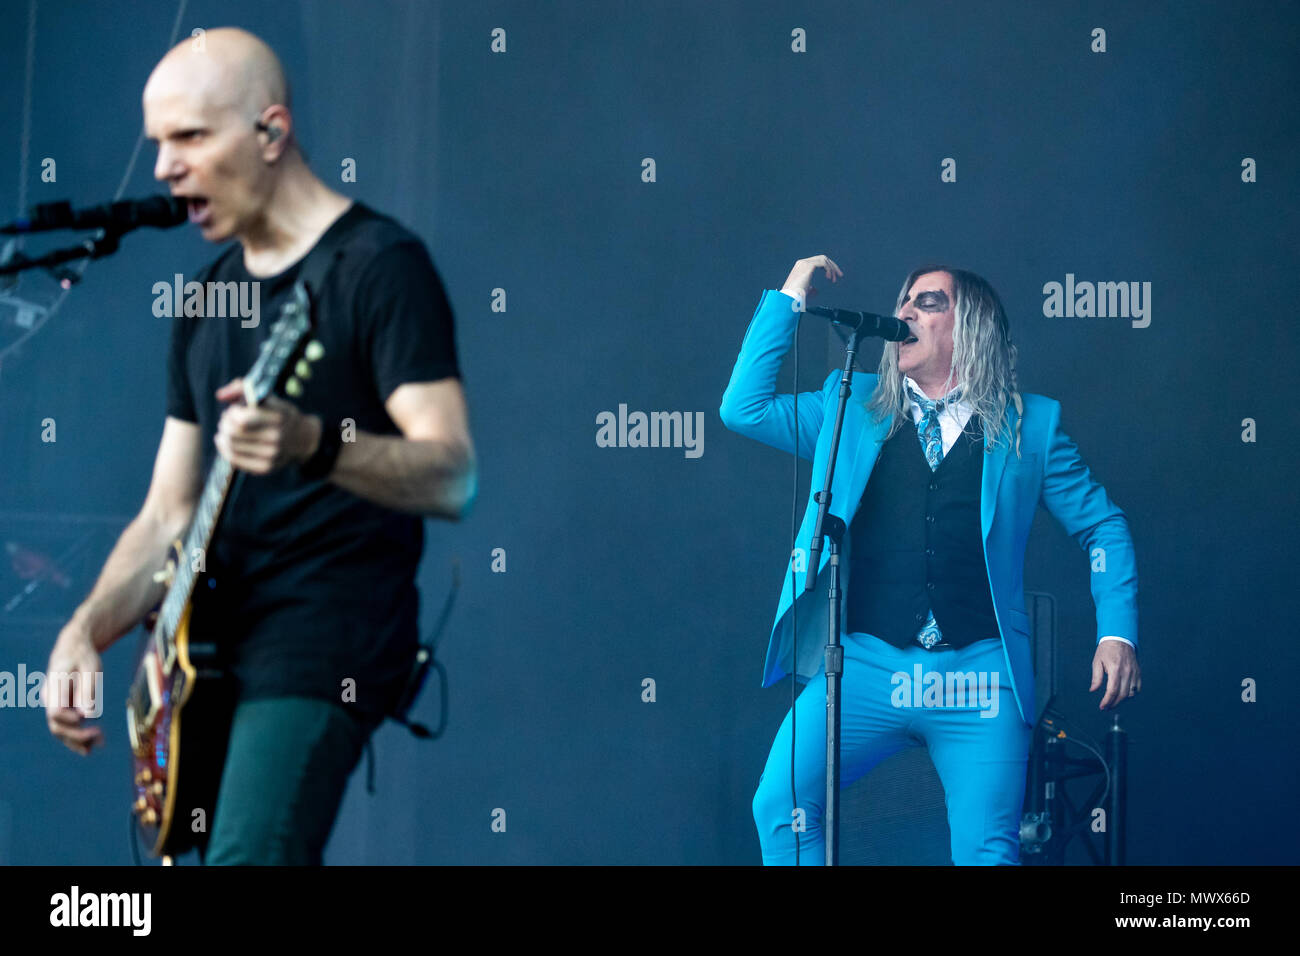 02-june-2018-germany-nuremberg-maynard-j